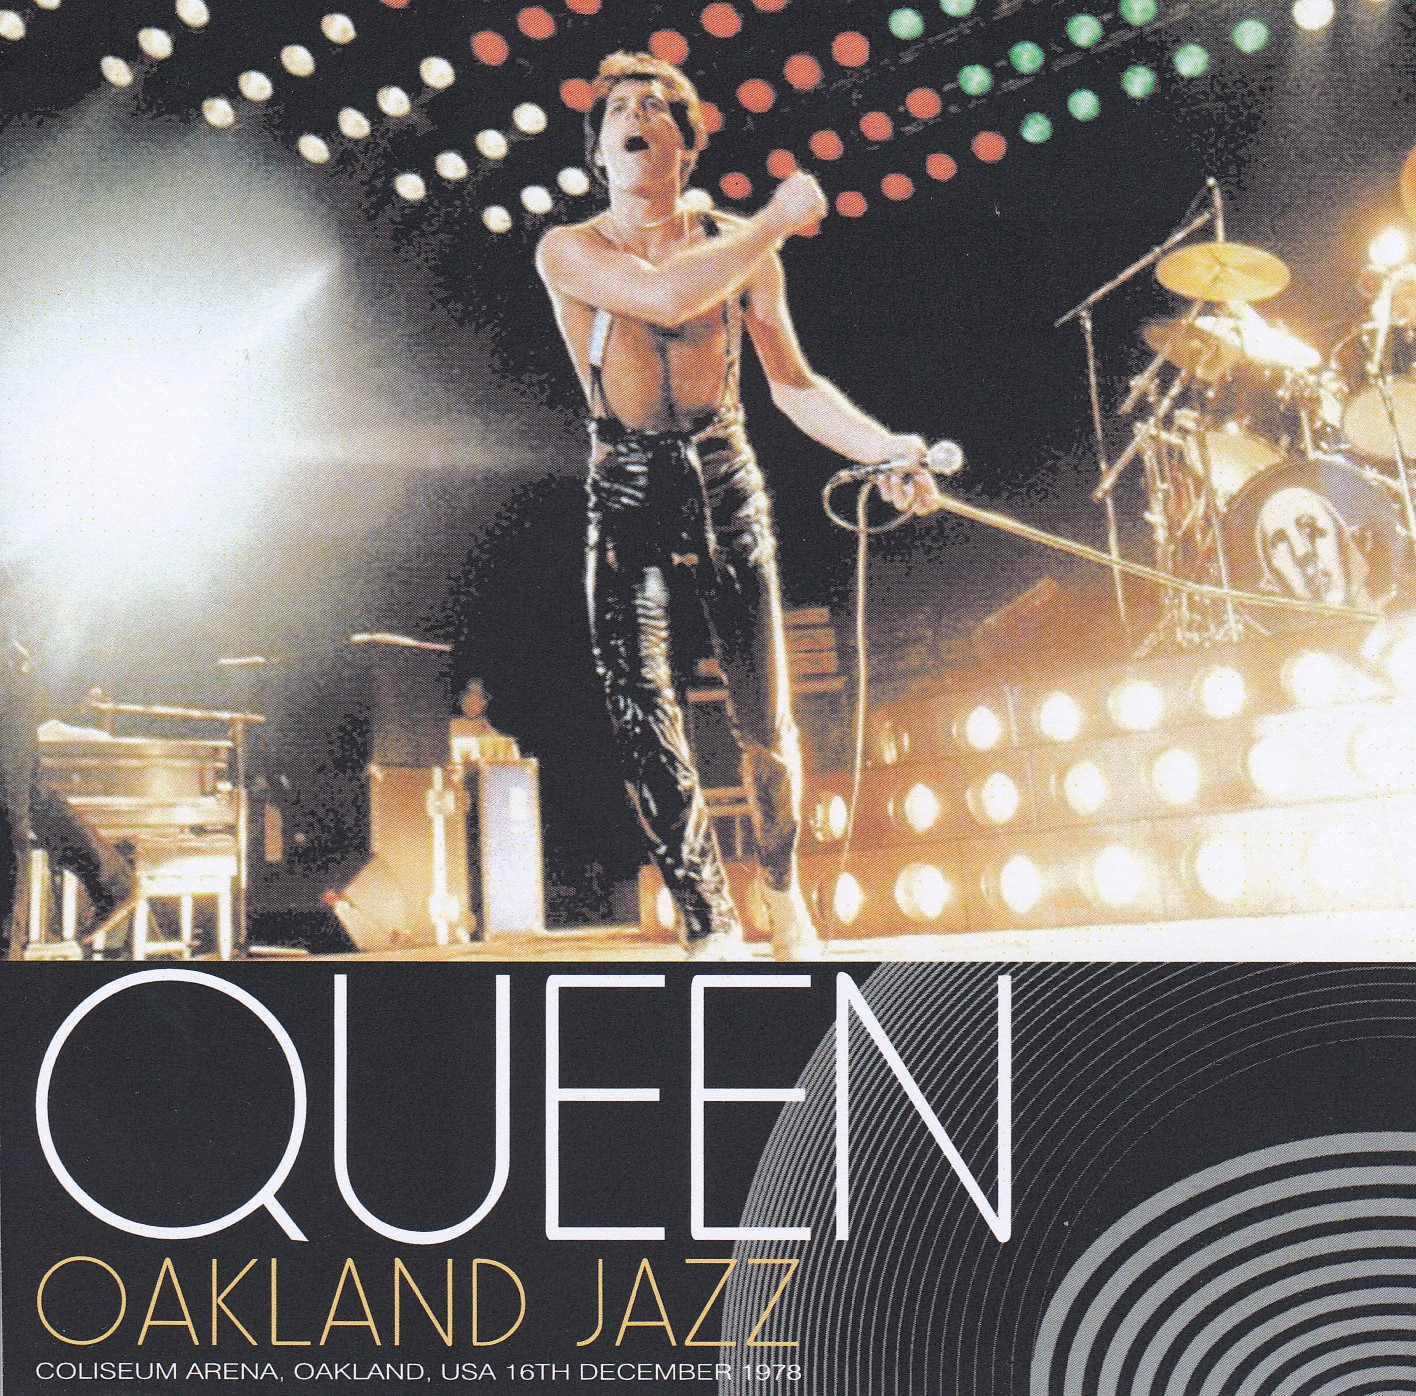 Queen1978-12-16ColiseumArenaOaklandCA (1).jpg